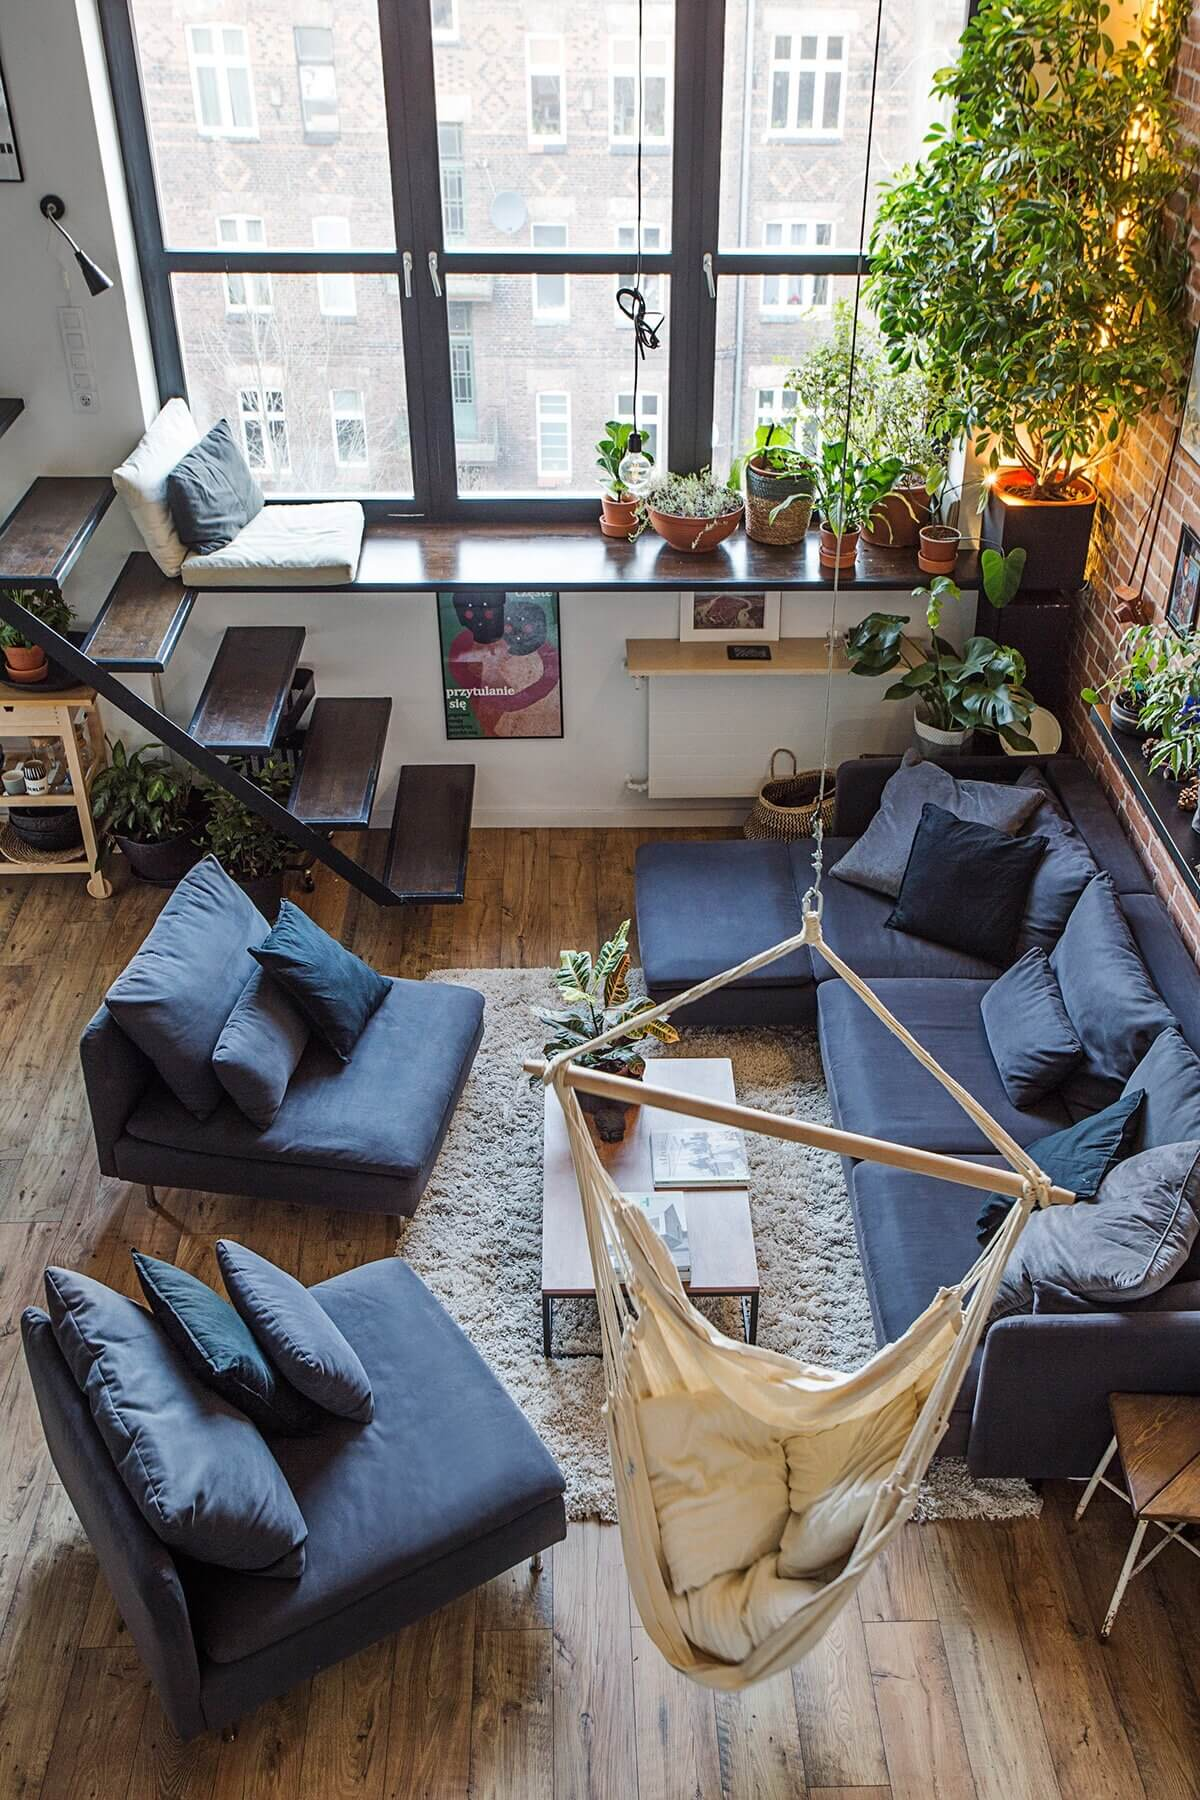 A Creative Loft Apartment in Poland with Exposed Brick and Art